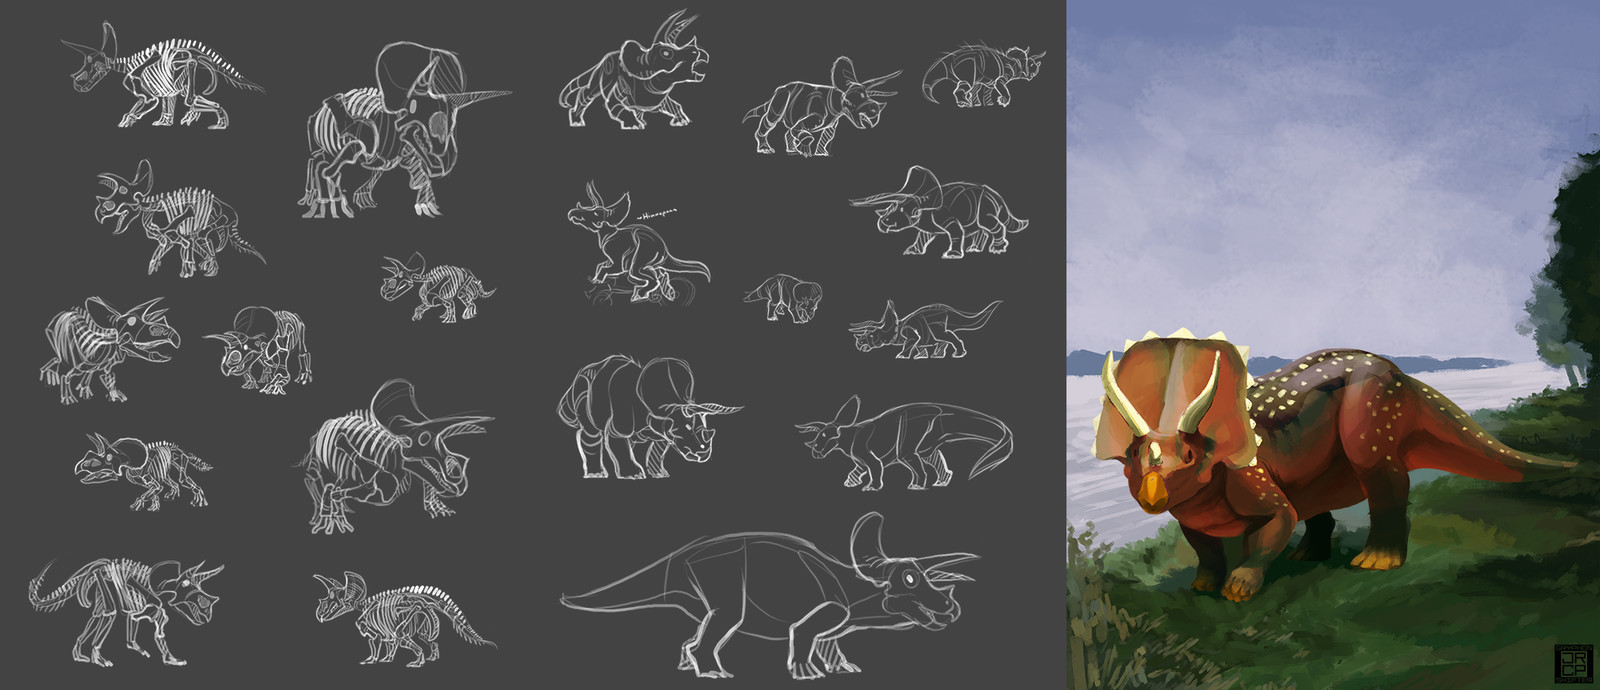 8: Triceratops styled after the illustration by Charles Knight.